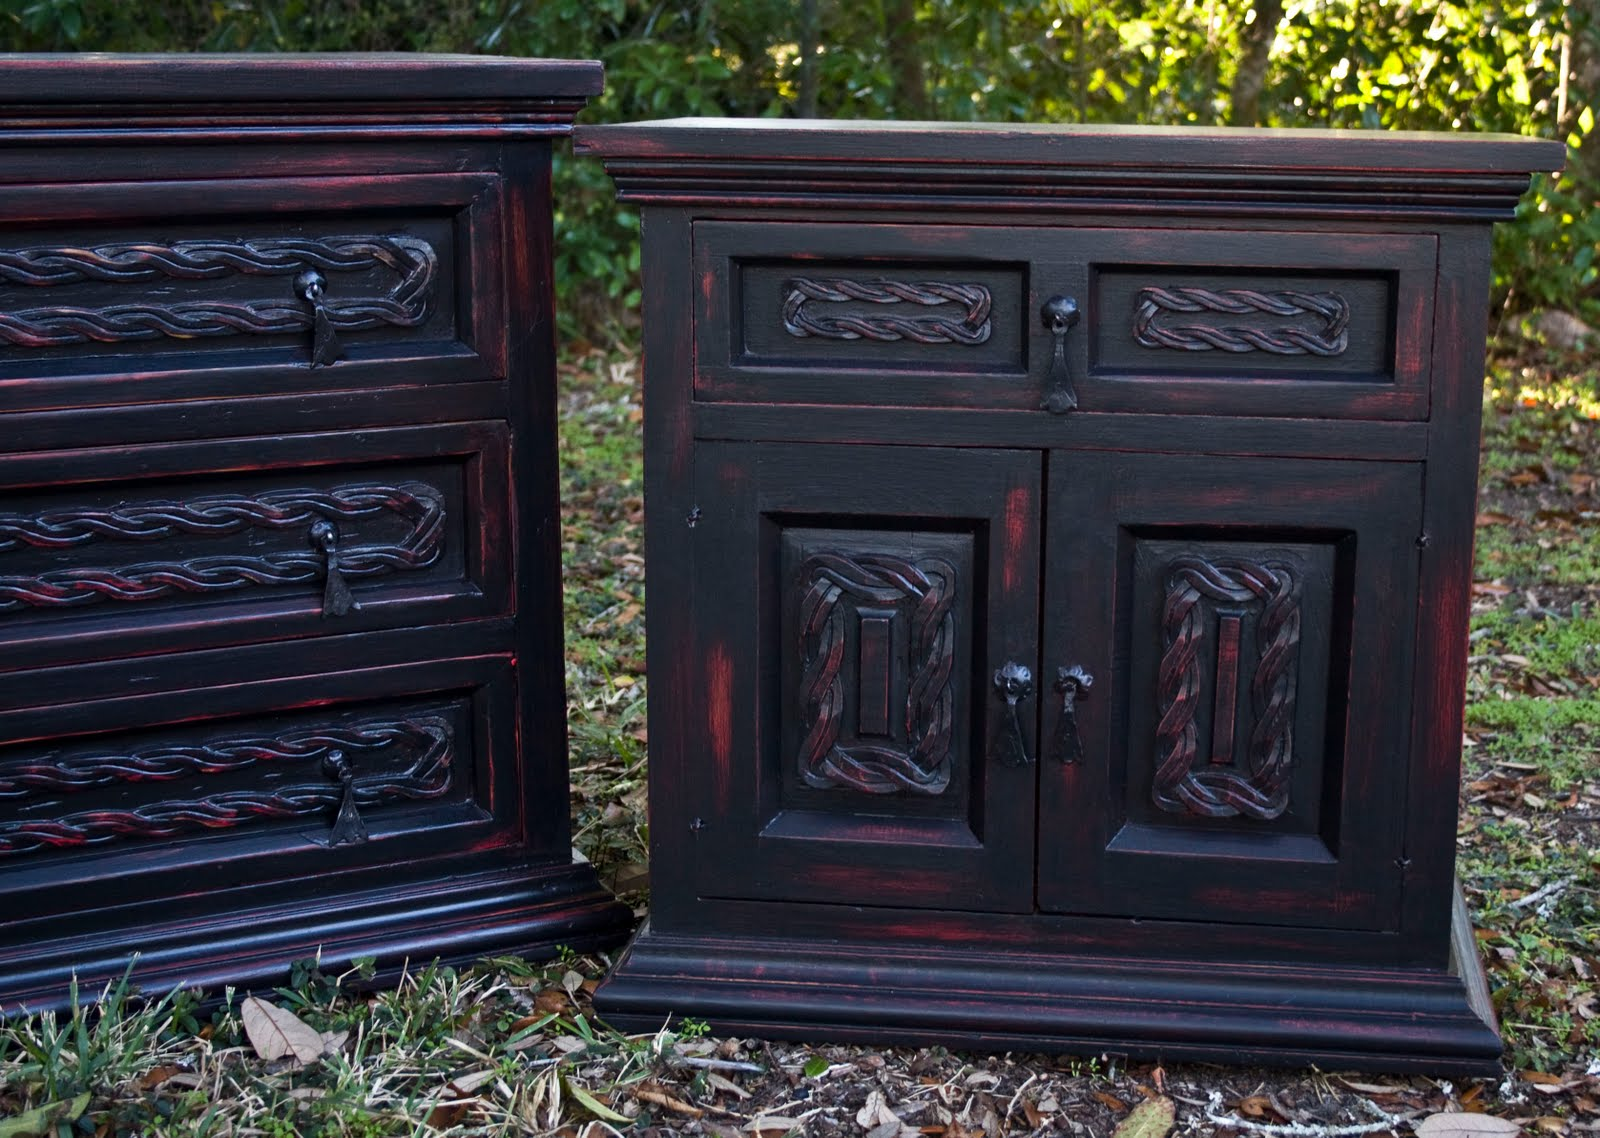 #989033 Modernly Shabby Chic Furniture: Black And Red Dresser And Nightstand with 1600x1138 px of Most Effective Black Nightstand And Dresser 11381600 wallpaper @ avoidforclosure.info